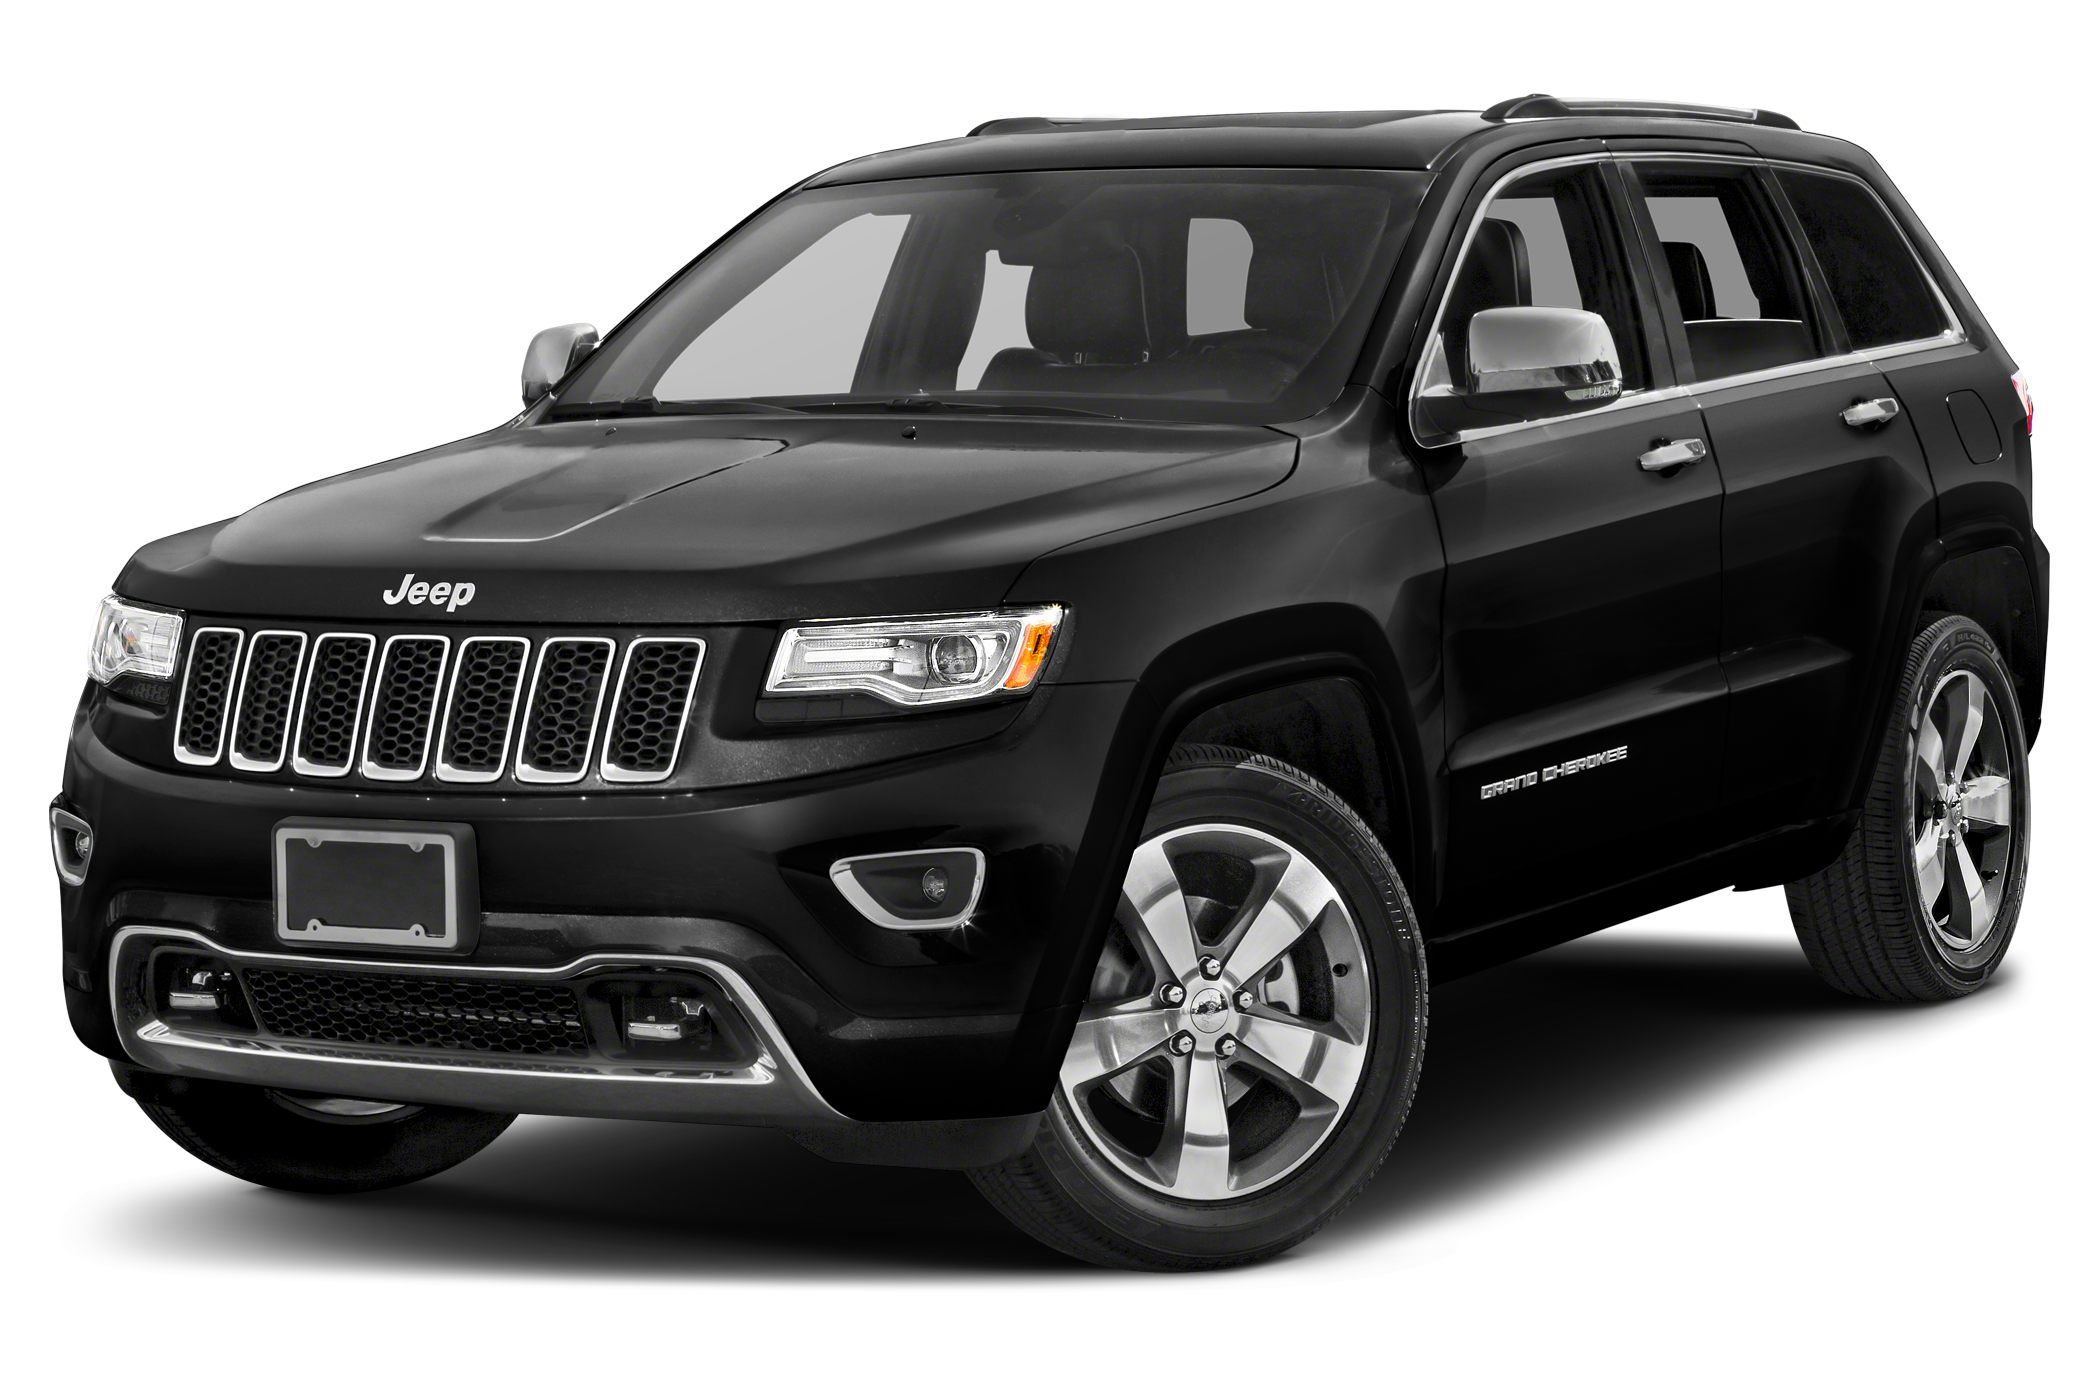 2015 Jeep Grand Cherokee Overland 4WD ABS brakes Compass Electronic Stability Control Emergency co